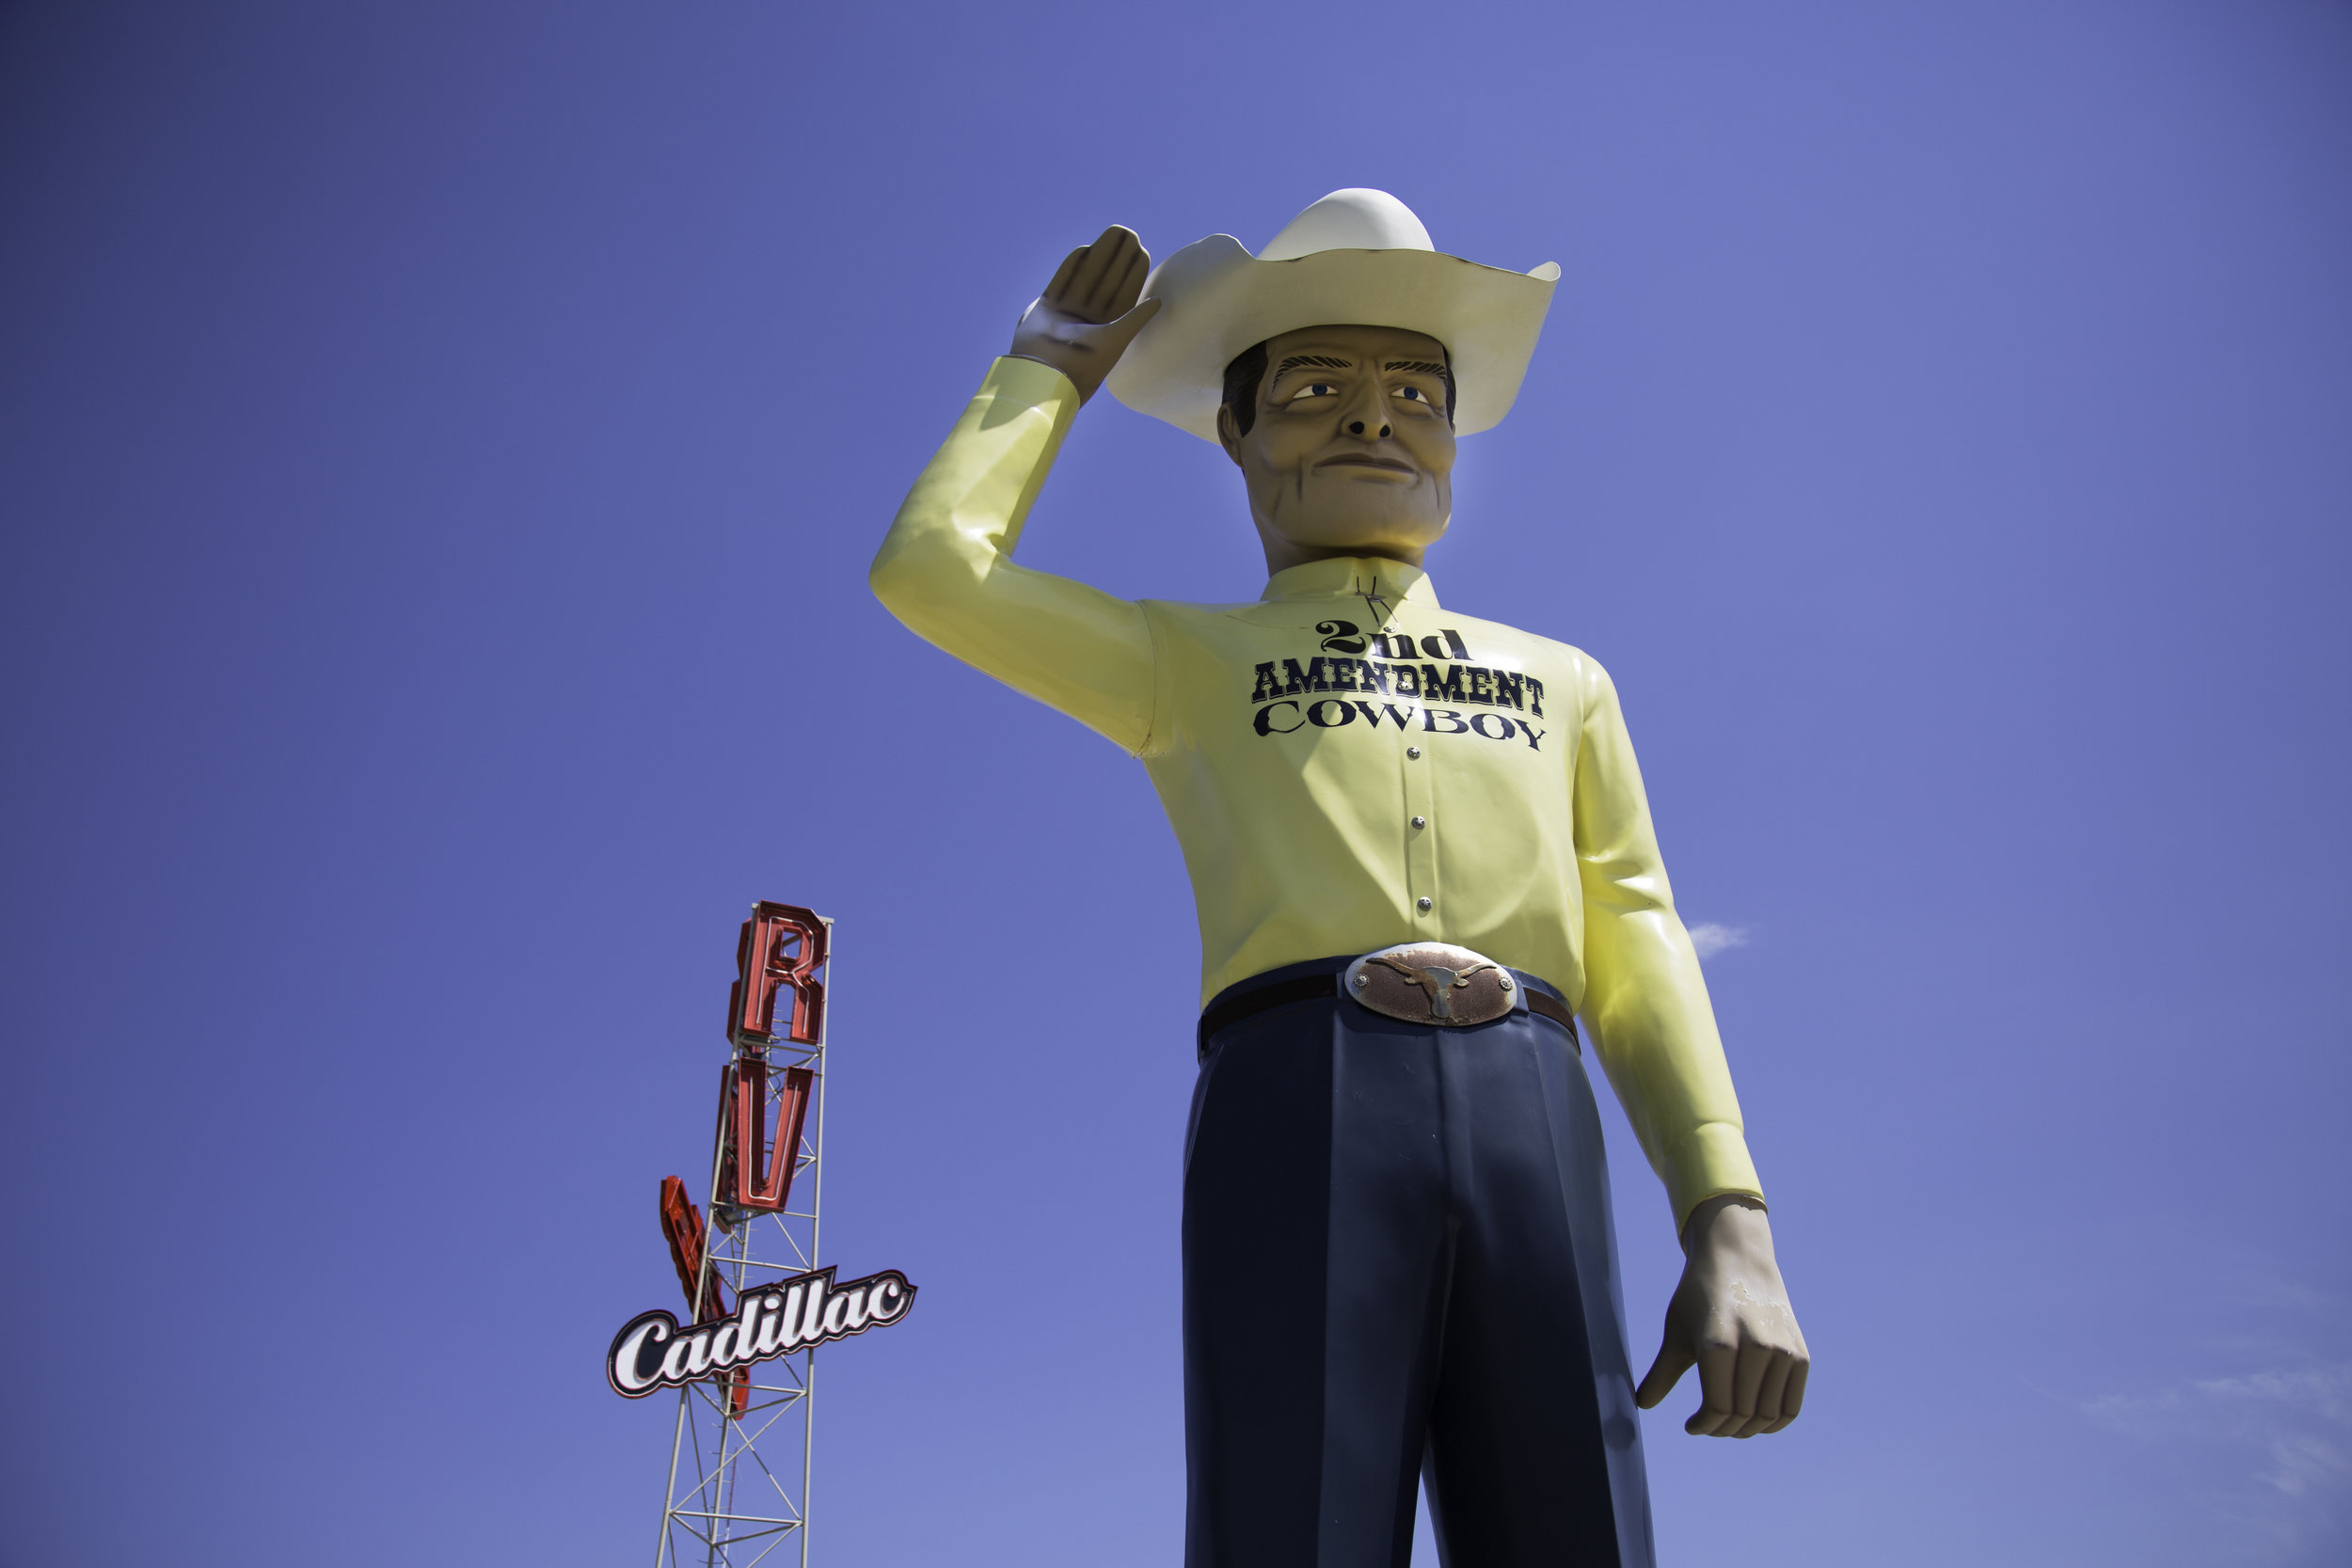 """Meet the 2nd Amendment Cowboy! He stands over two stories tall at the Cadillac RV Park just down the road from the Cadillac Ranch. Apparently, the cowboy originally advertised Amarillo Barbecue Steakhouse but was auctioned in 2014 to this RV Park.  A plaque stands in front of the cowboy quoting George Washington, """"A free people ought not only be armed and disciplined, but they should have sufficient arms and ammunition to maintain a status of independence from any who might attempt to abuse them, which would include their own government."""""""